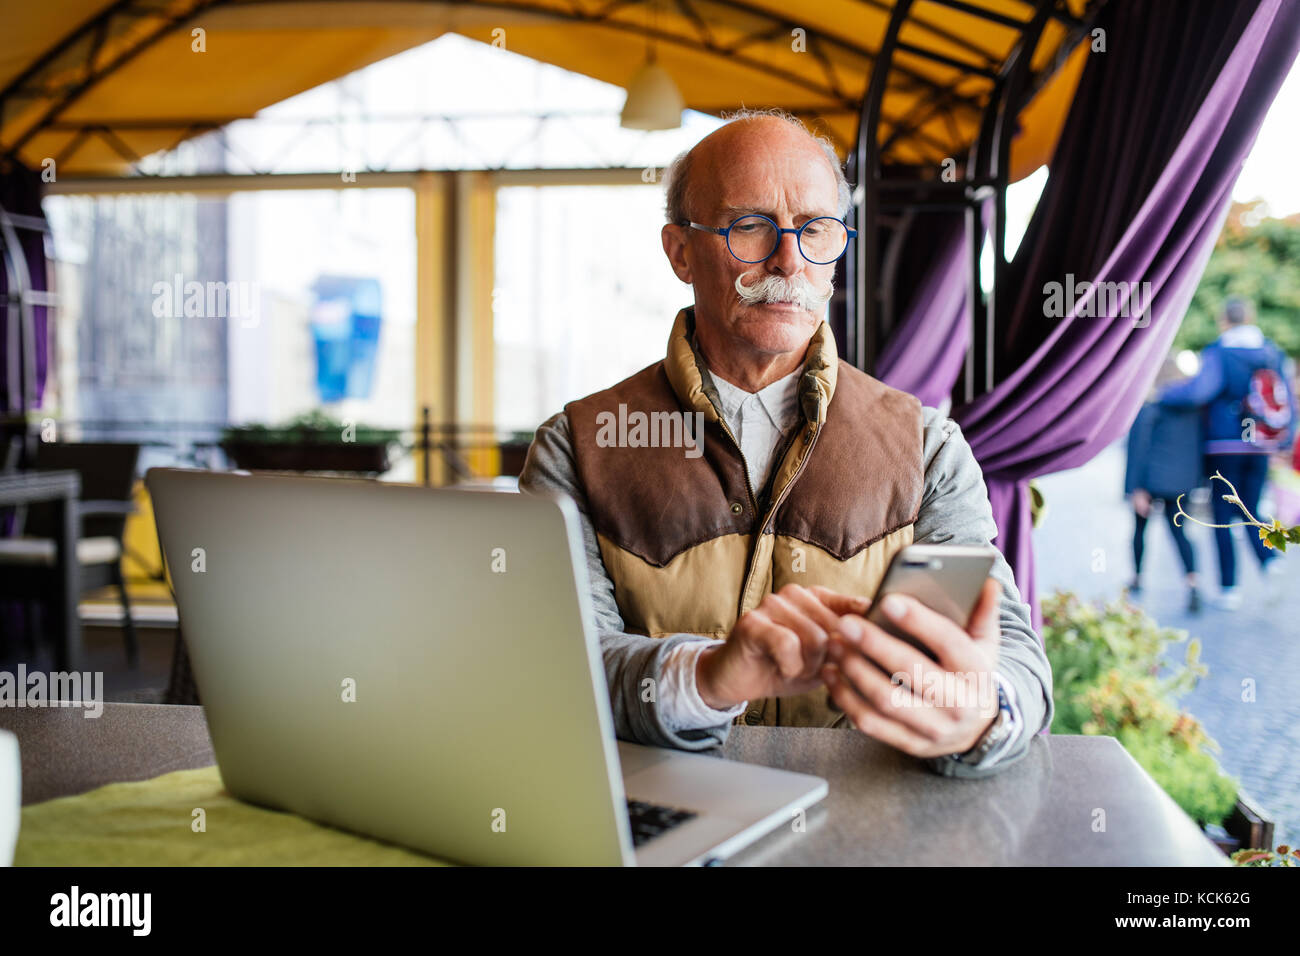 Old senior businessman in suit and tie with laptop computer and smartphone, sitting in city cafe house - Stock Image